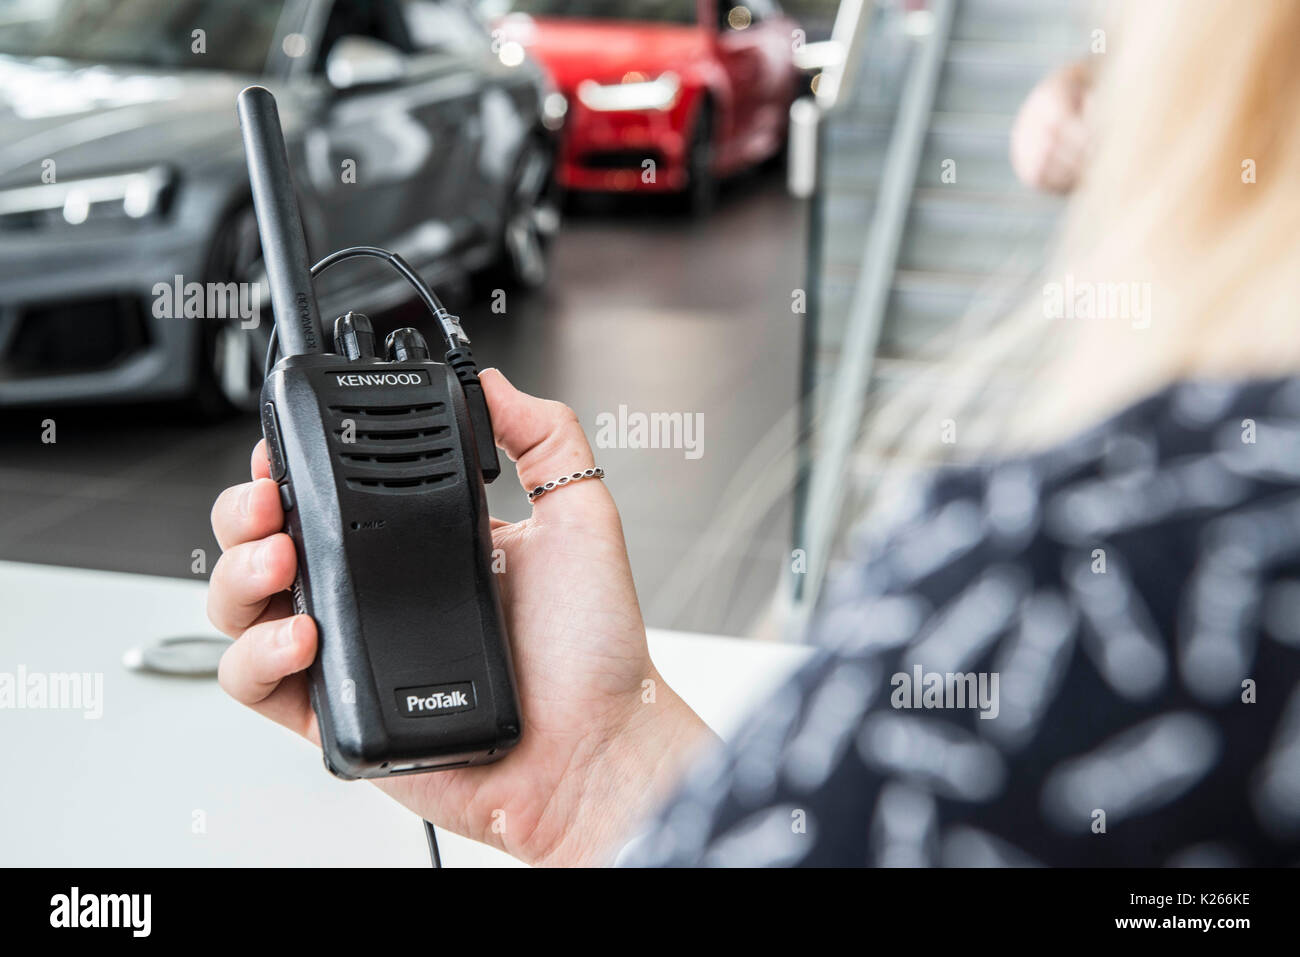 Walkie Talkies used for communication at a car dealership Stock Photo